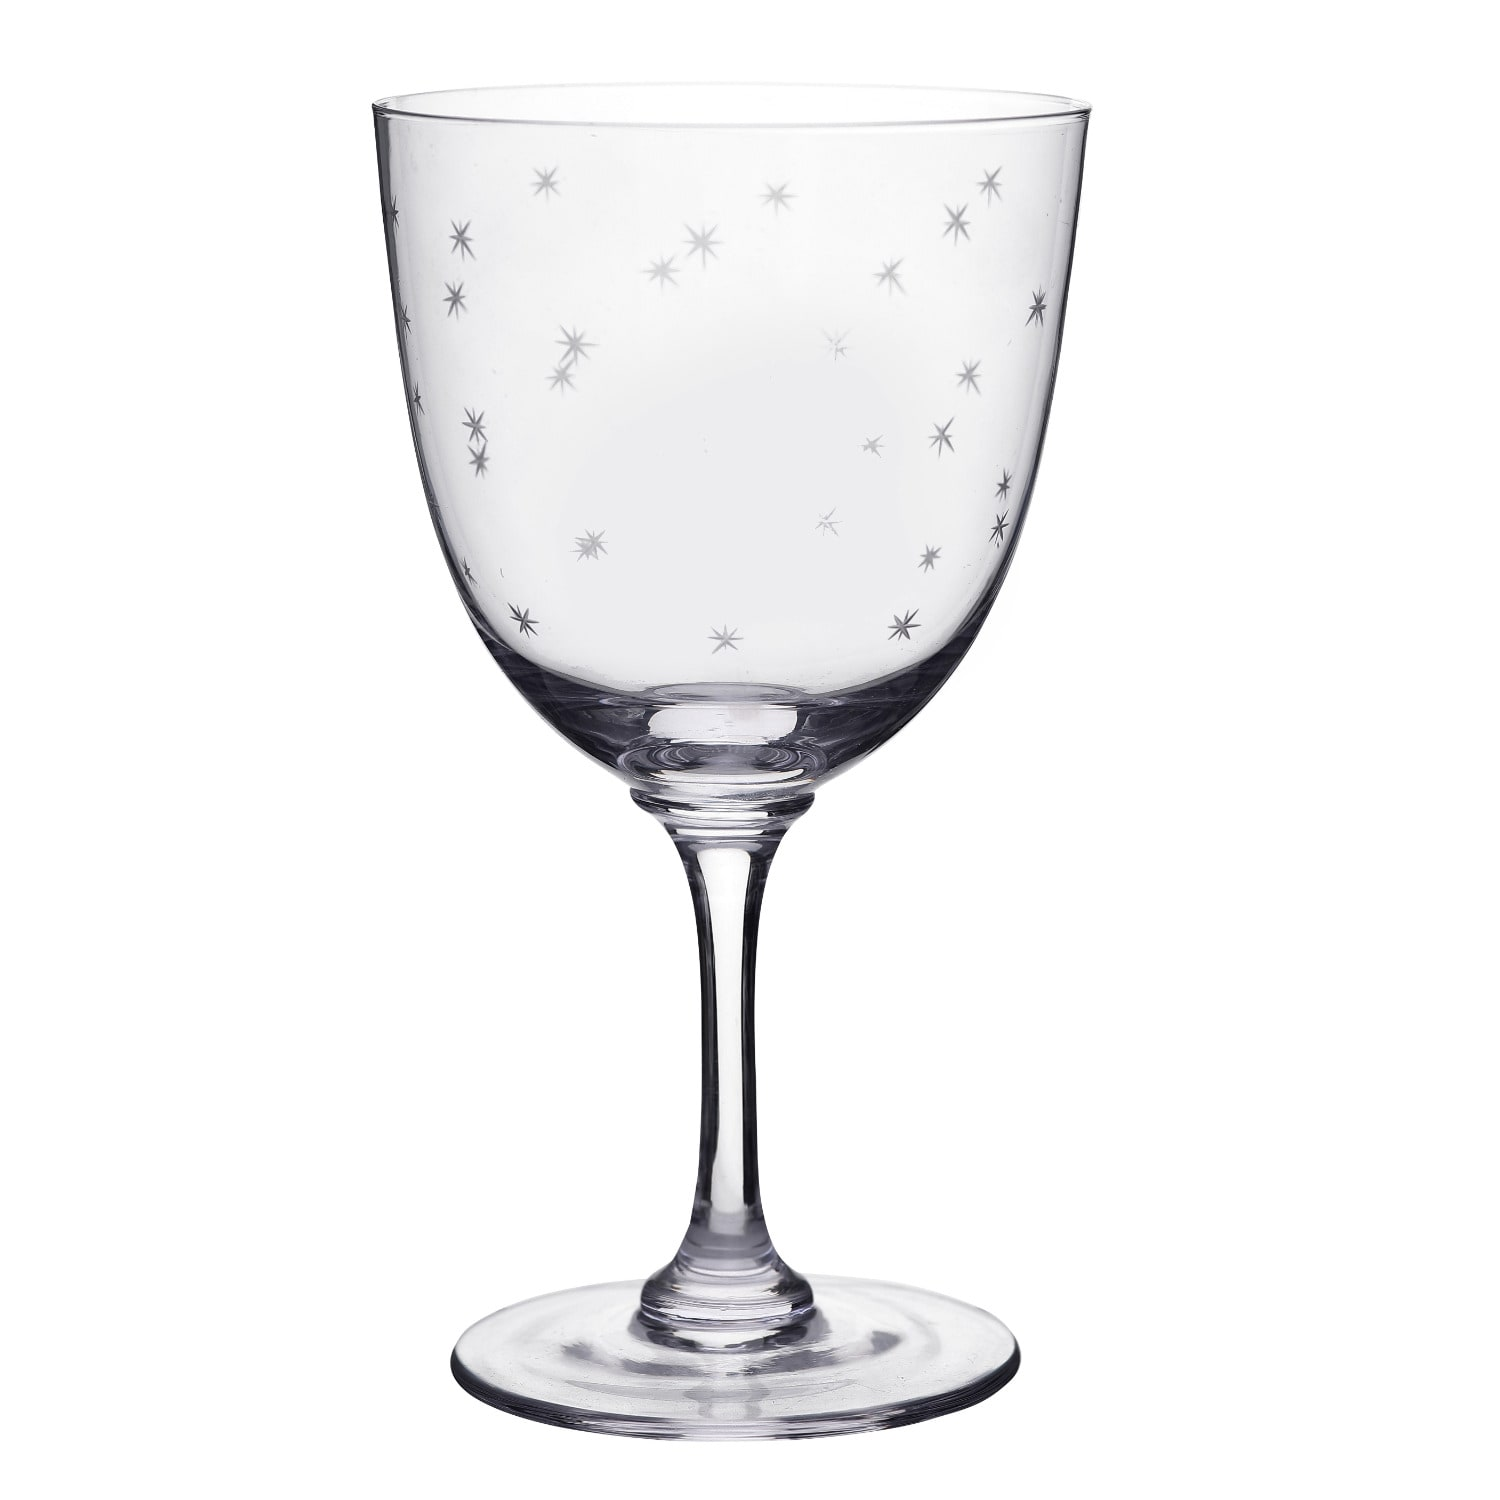 The Vintage List - Six Hand-Engraved Crystal Wine Glasses with Stars Design